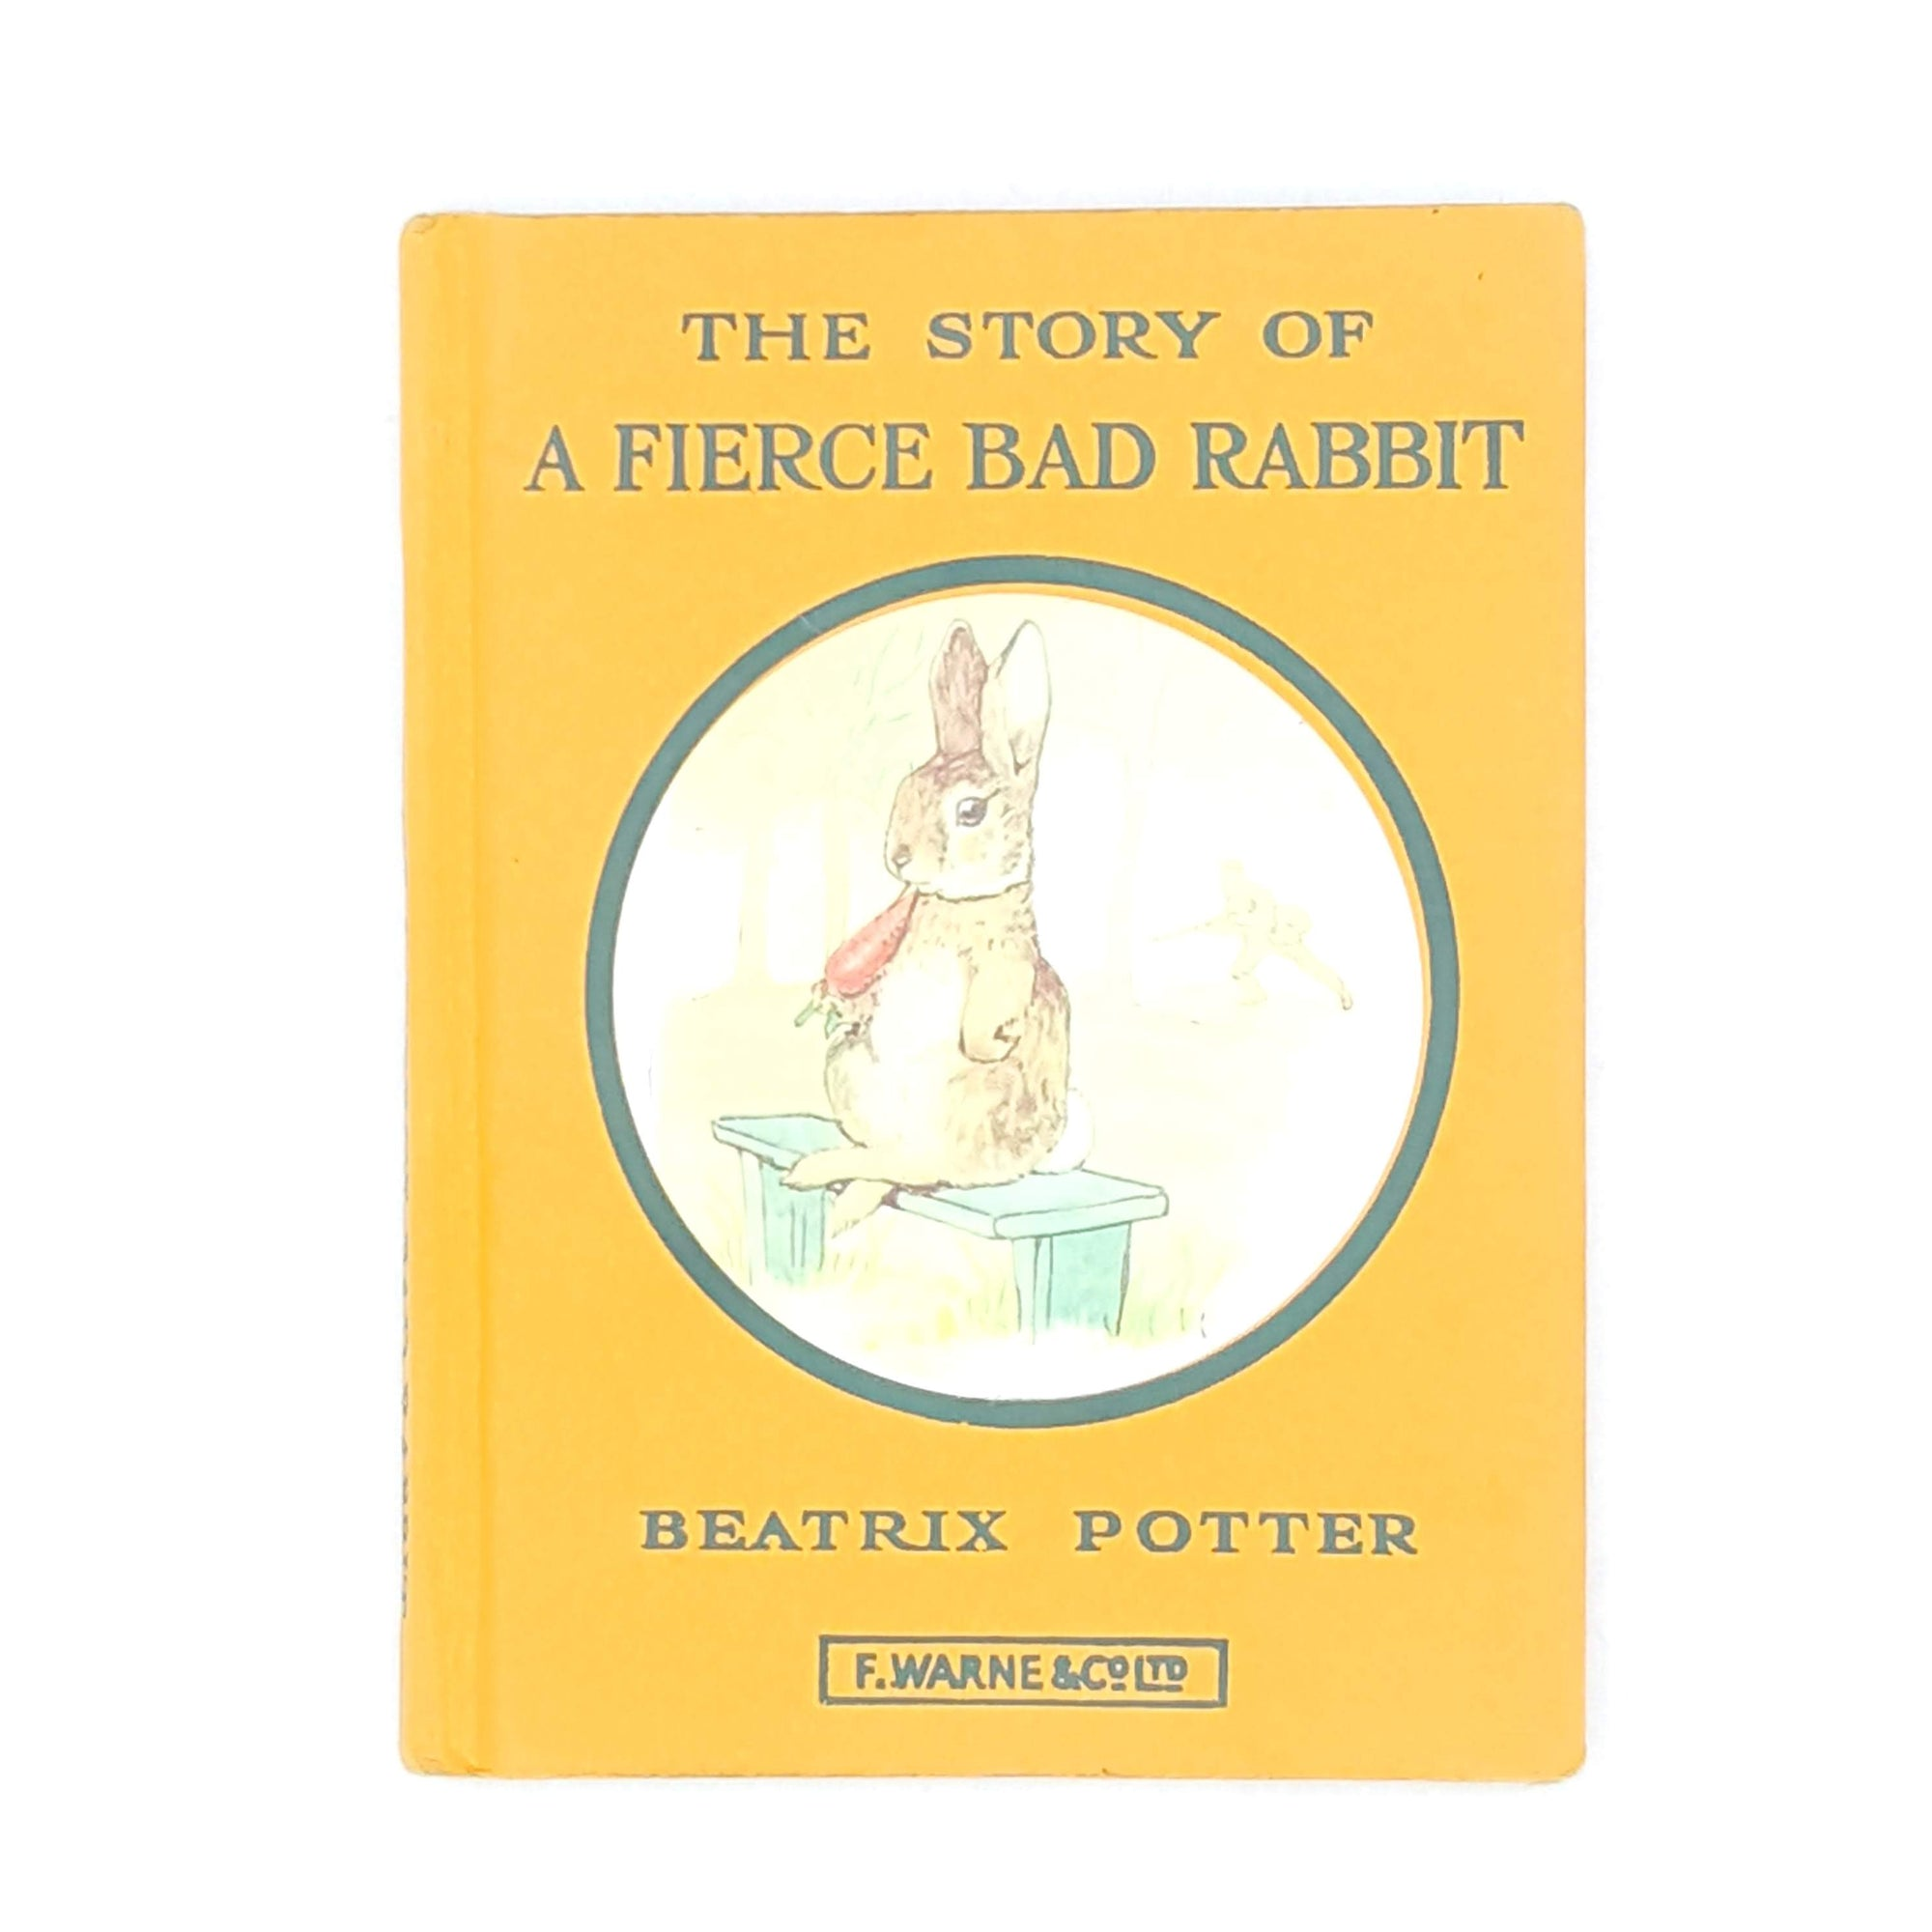 Beatrix Potter's The Story of a Fierce Bad Rabbit, orange cover